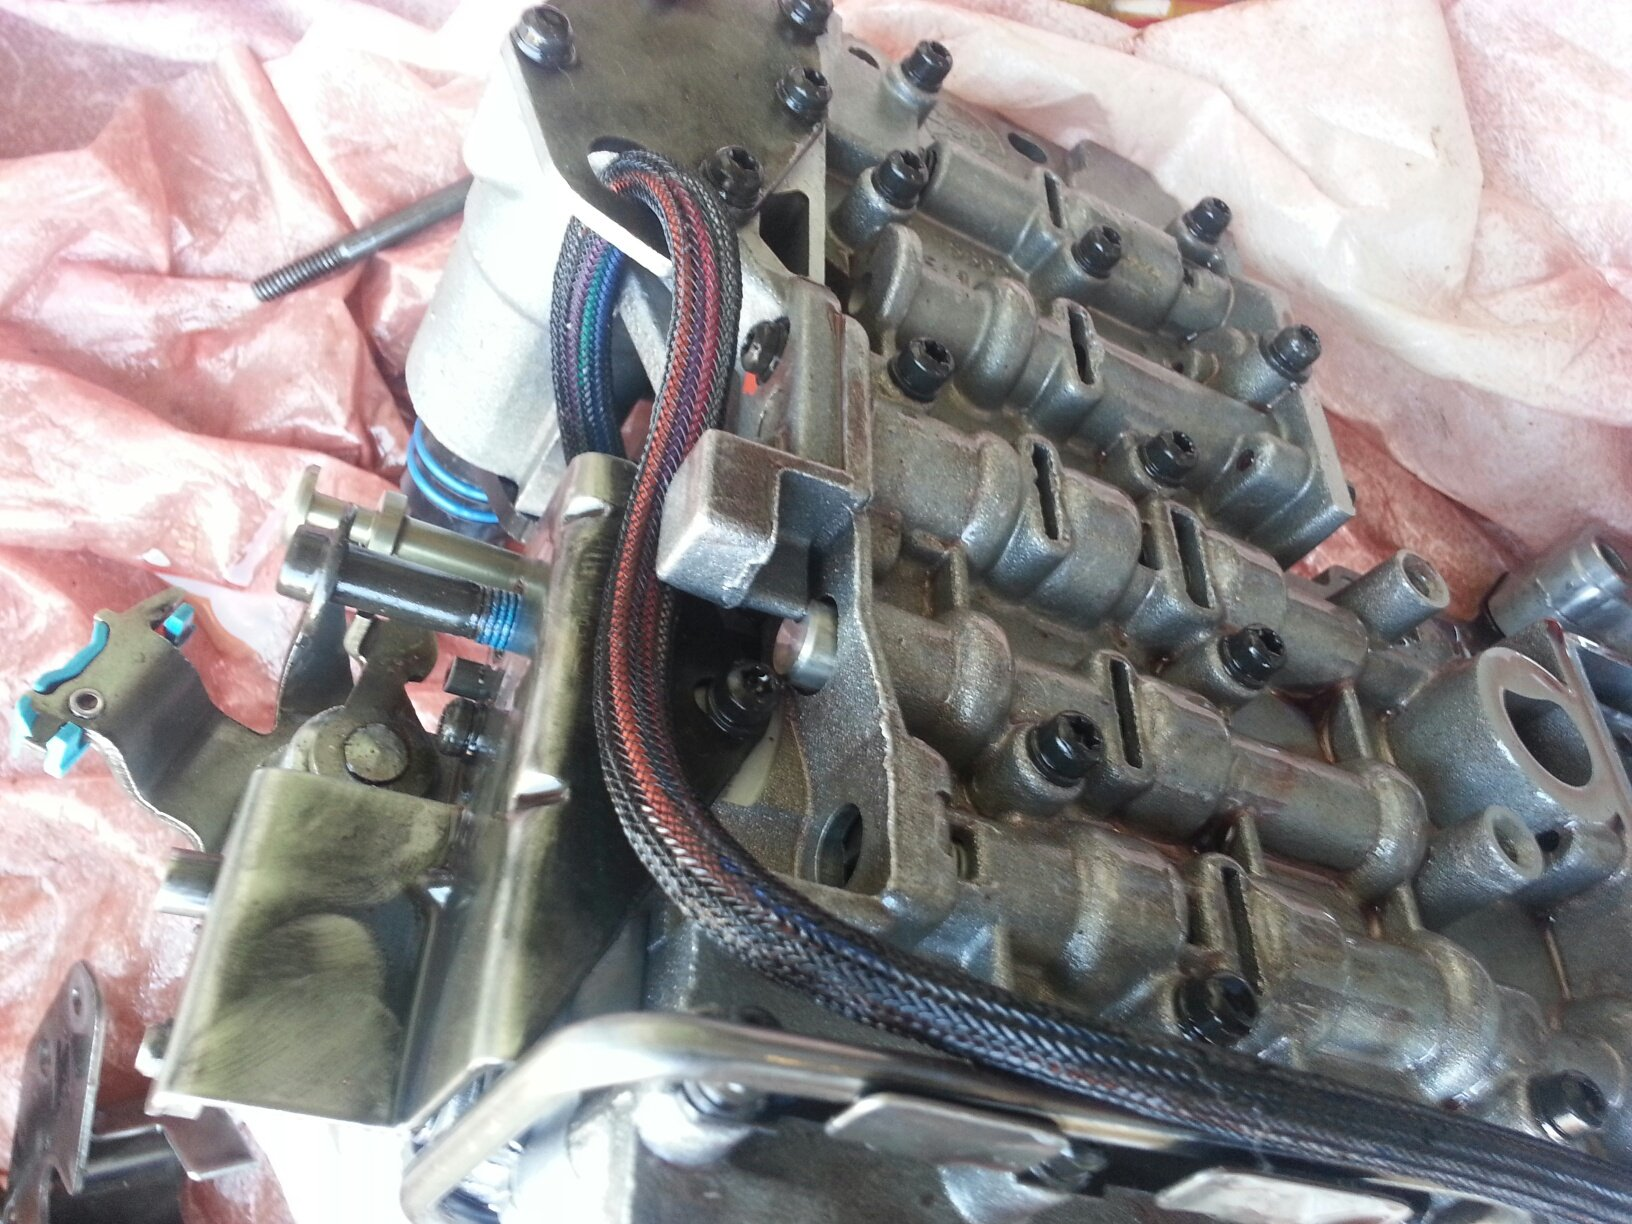 I remove the valve body from the 42RE transmission (2000